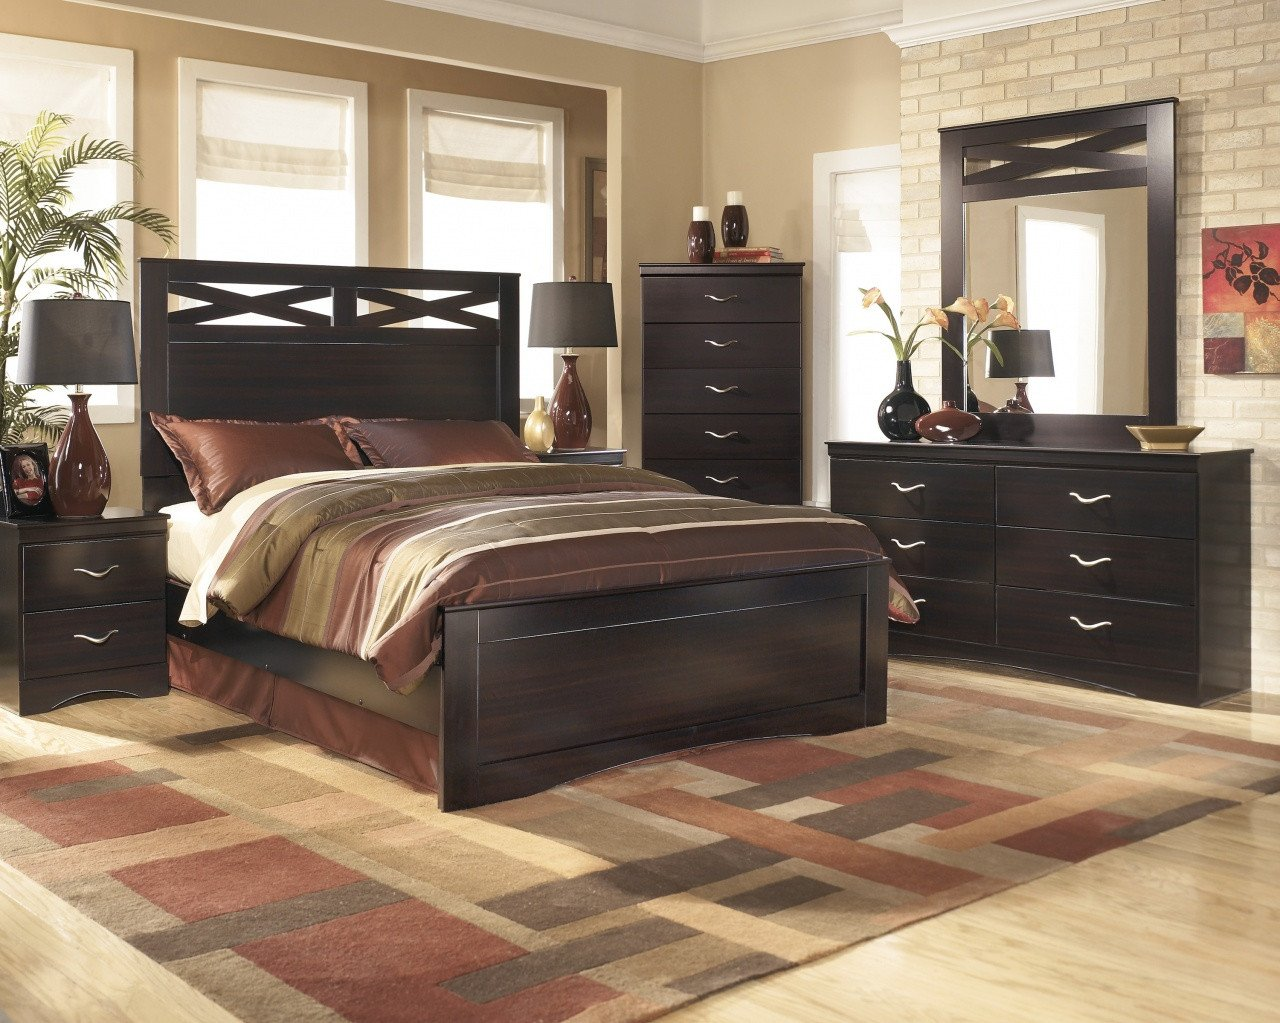 Ashley Porter Bedroom Set Luxury ashley Furniture Queen Bedroom Sets – the New Daily Nation